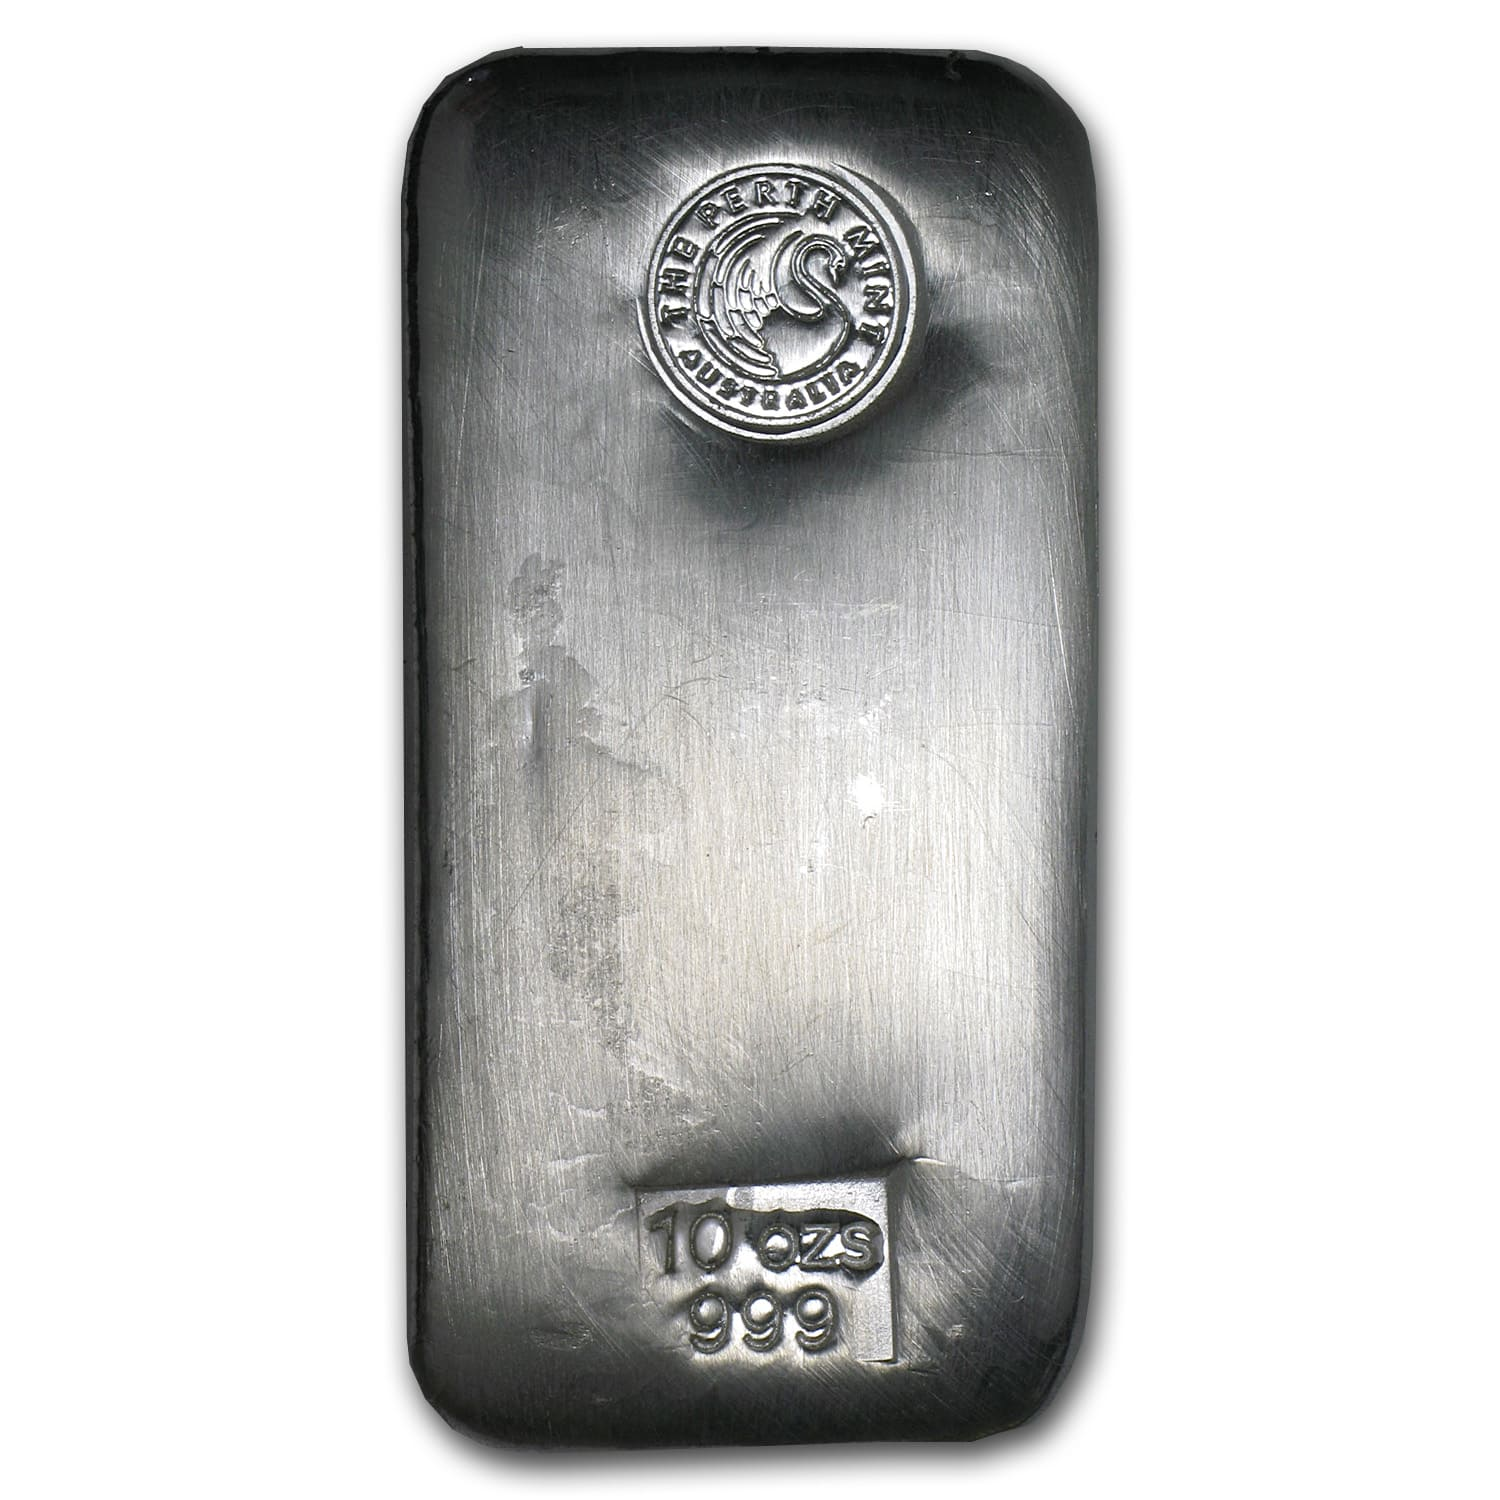 10 oz Silver Bar - Perth Mint